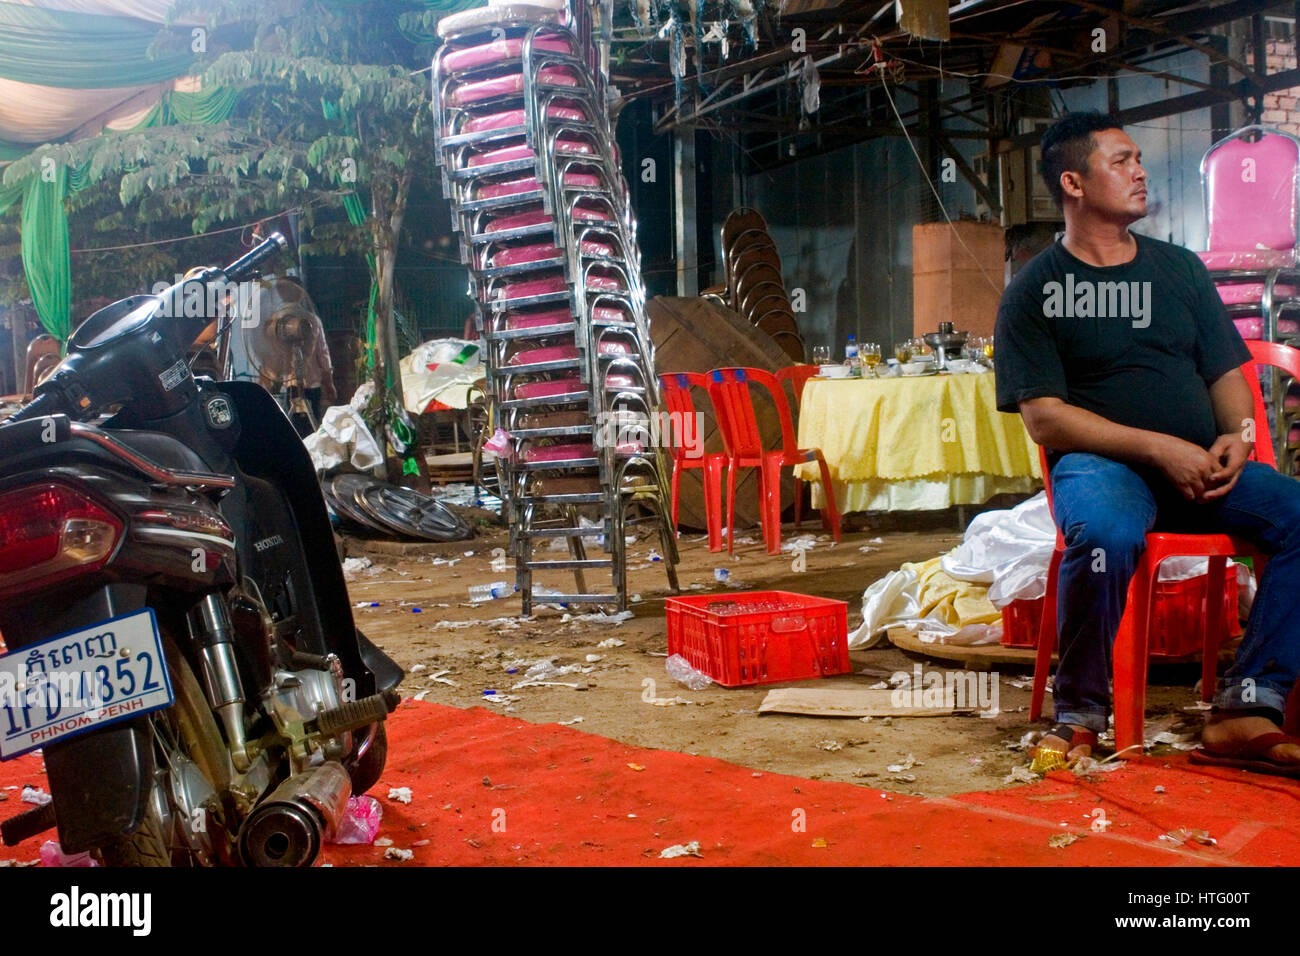 A man is sitting in a littered are near a stack of chairs after a wedding reception in Chork Village, Cambodia. - Stock Image